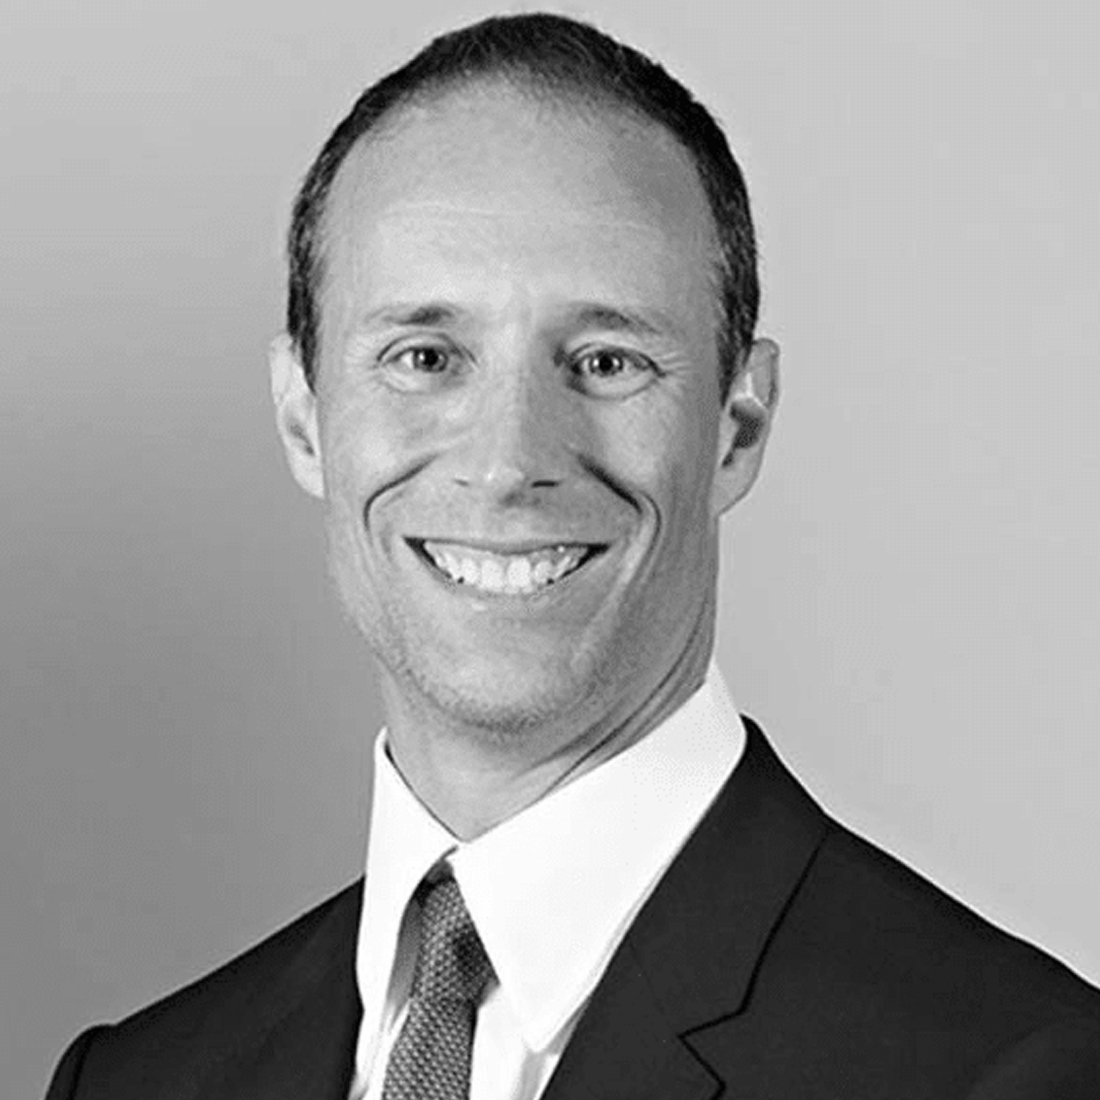 <p><strong>Josh Lawler</strong><br>Strategy Lawyer Zuber, Lawler, & Del Duca LLP</p>